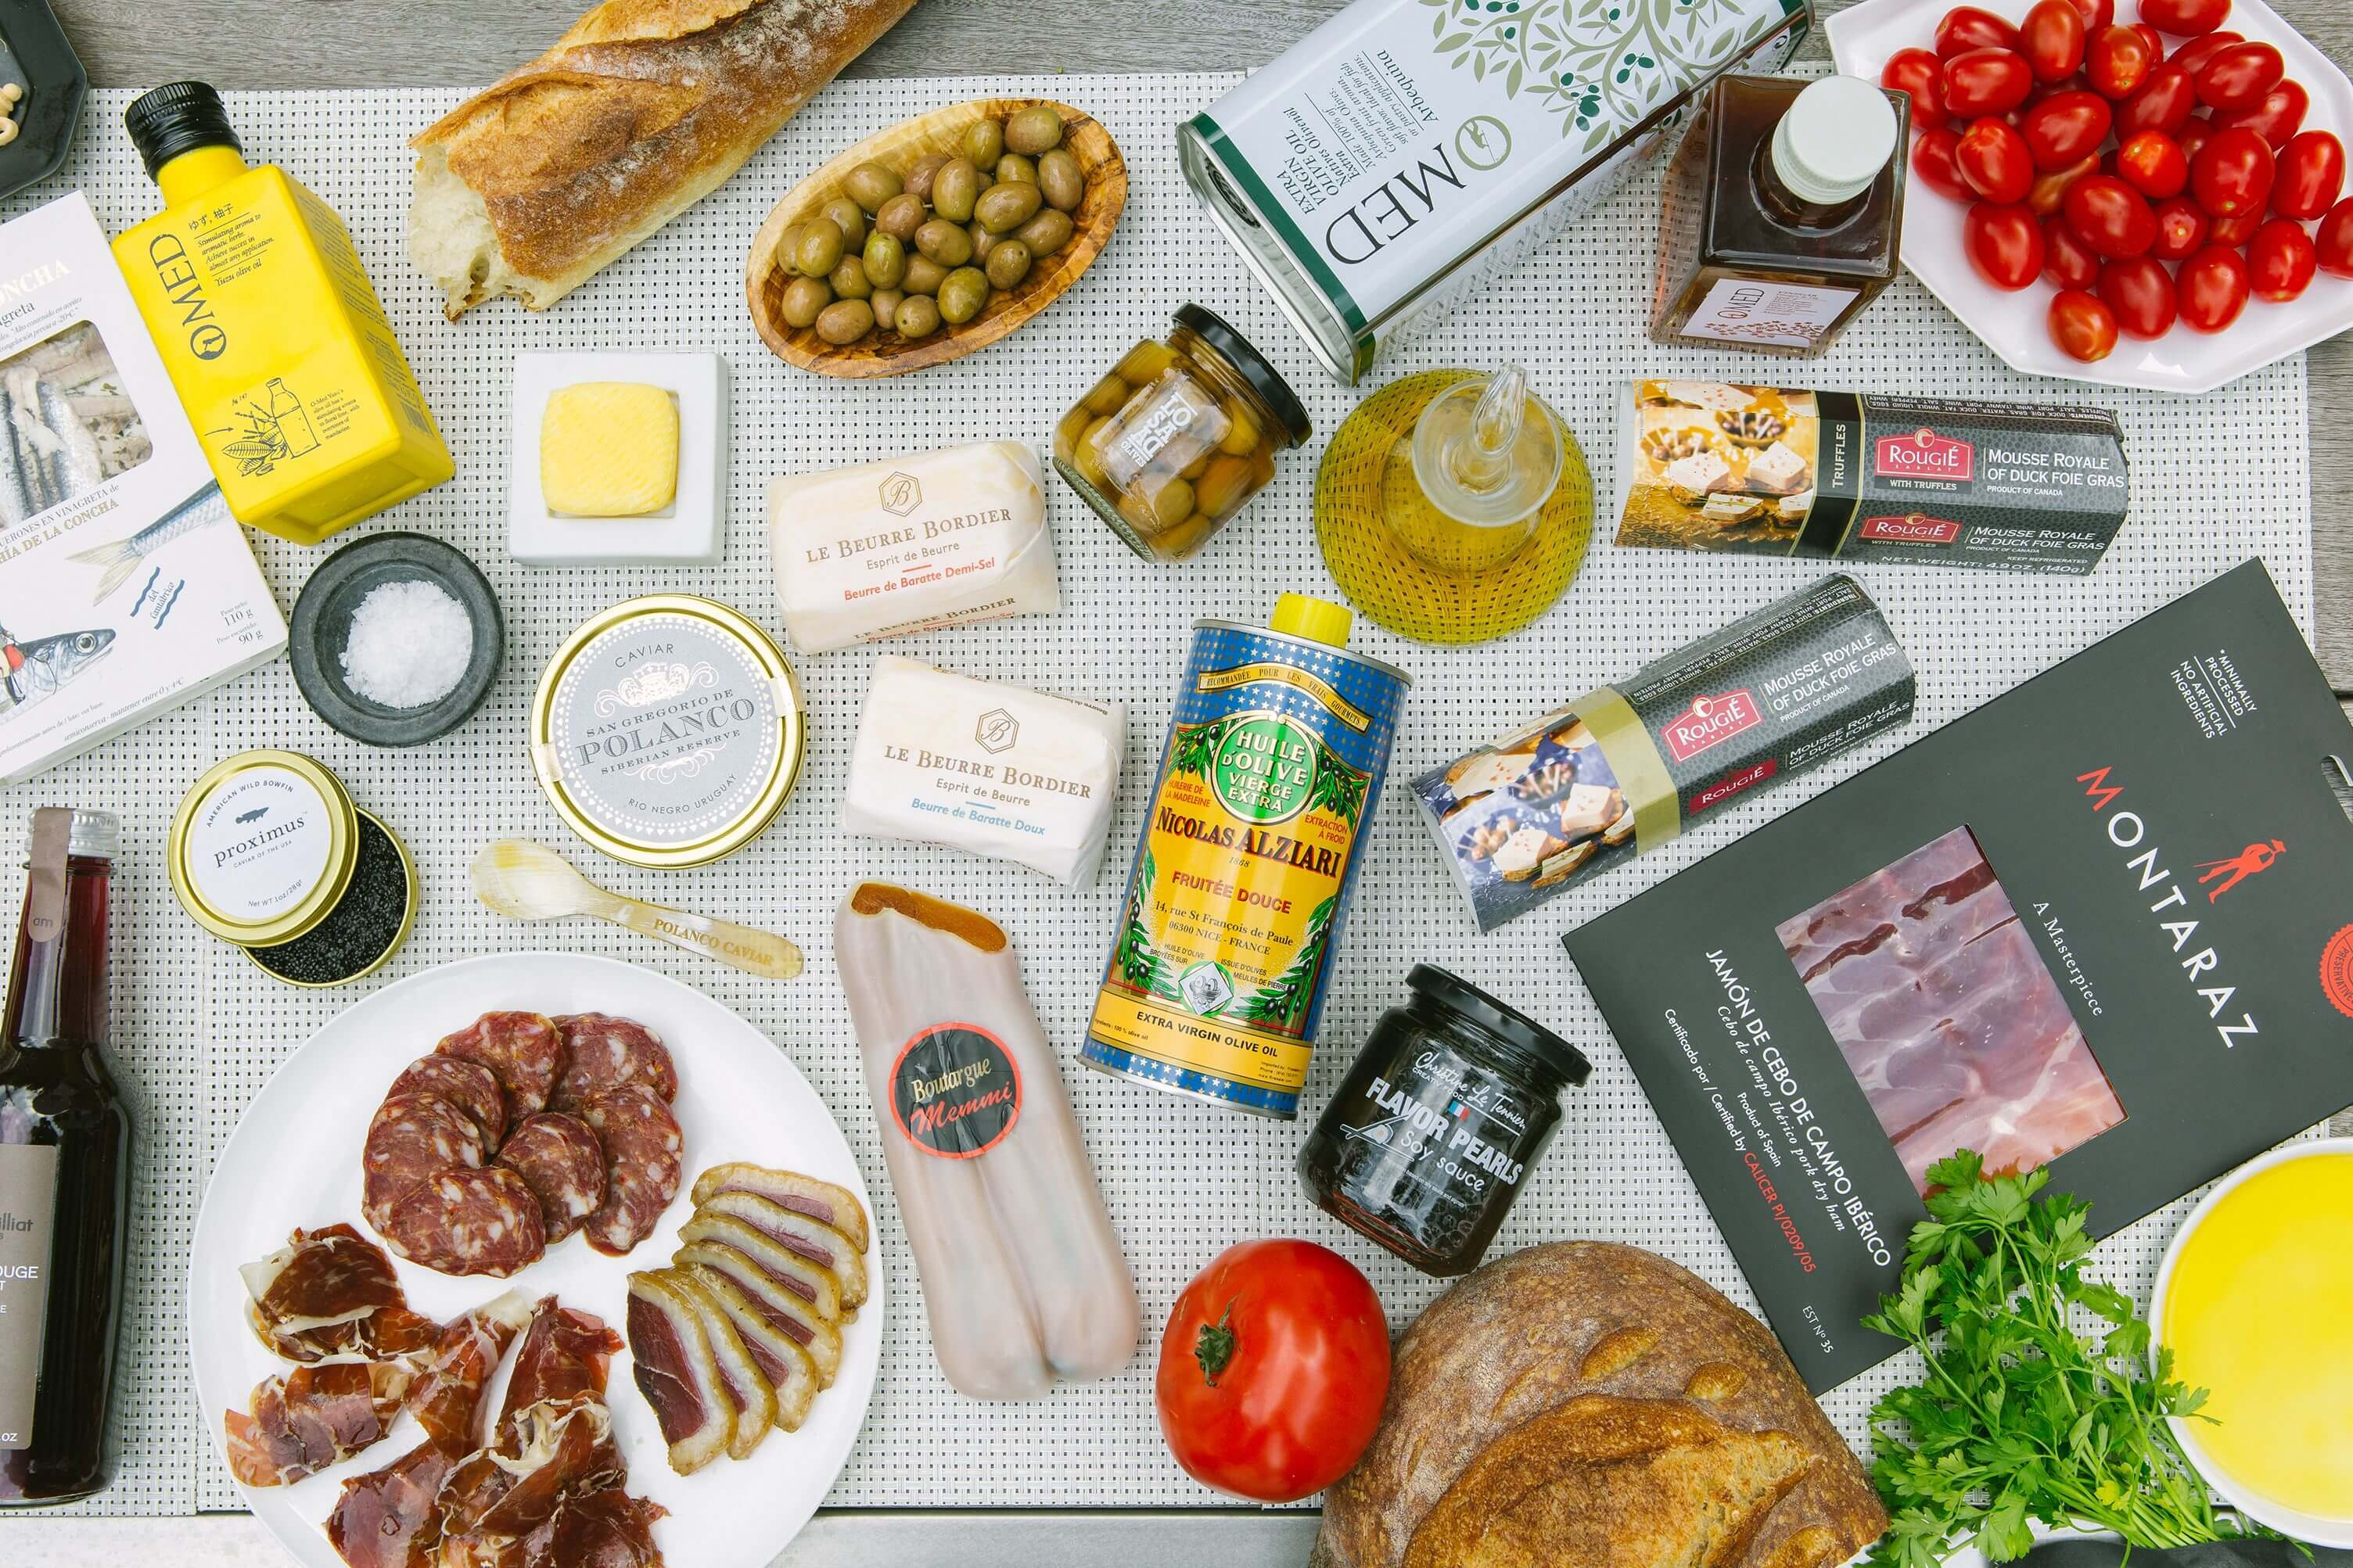 Assorted Gourmet Cargo products